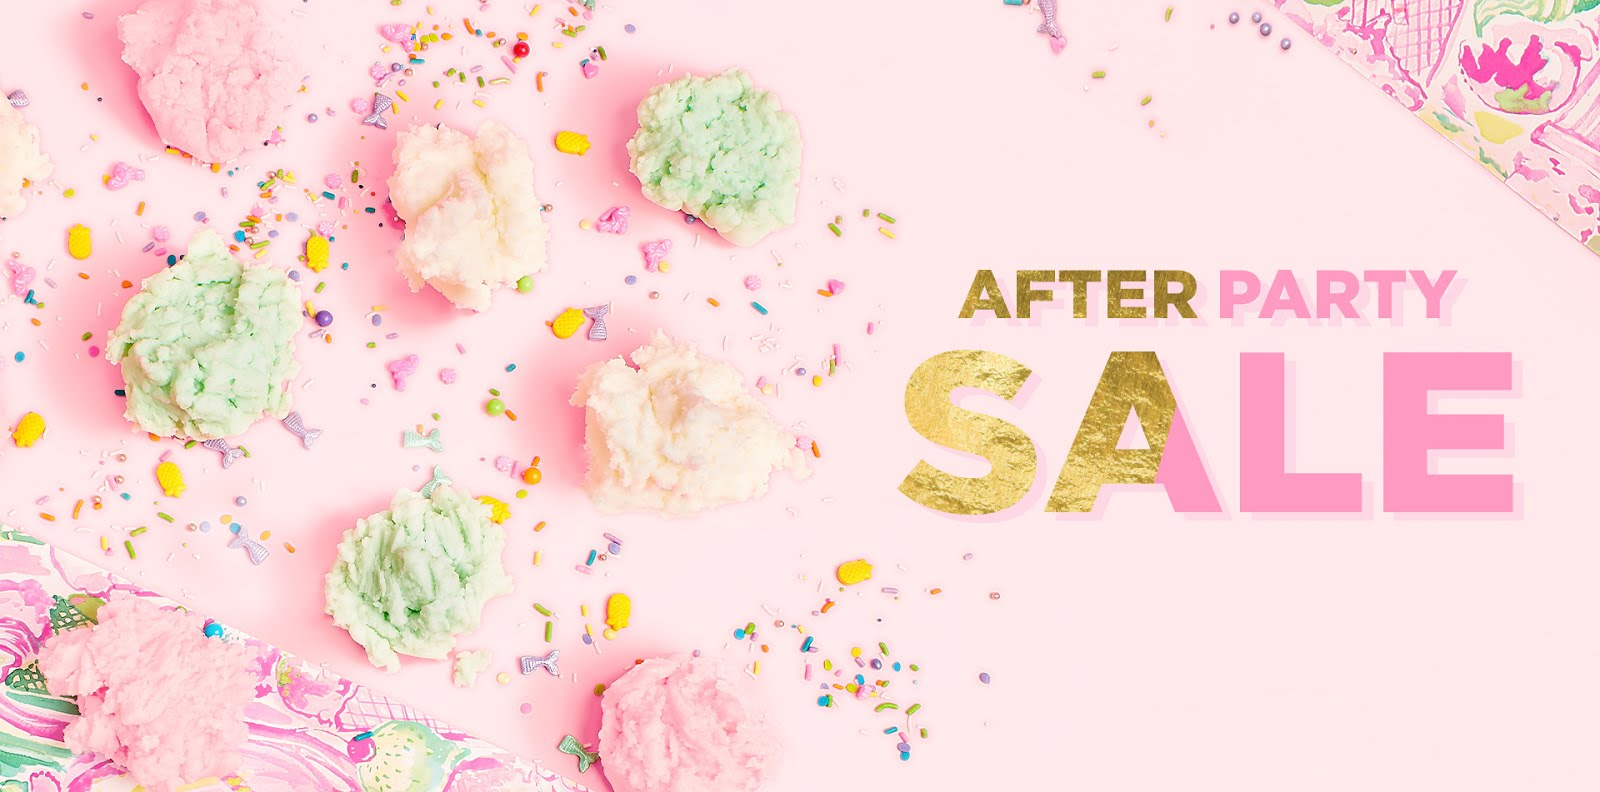 Lilly Pulitzer After Party Sale Summer 2019: Tips & Tricks for Shopping the Sale + Sizing Guide on Pieces Included  - Something Delightful Blog